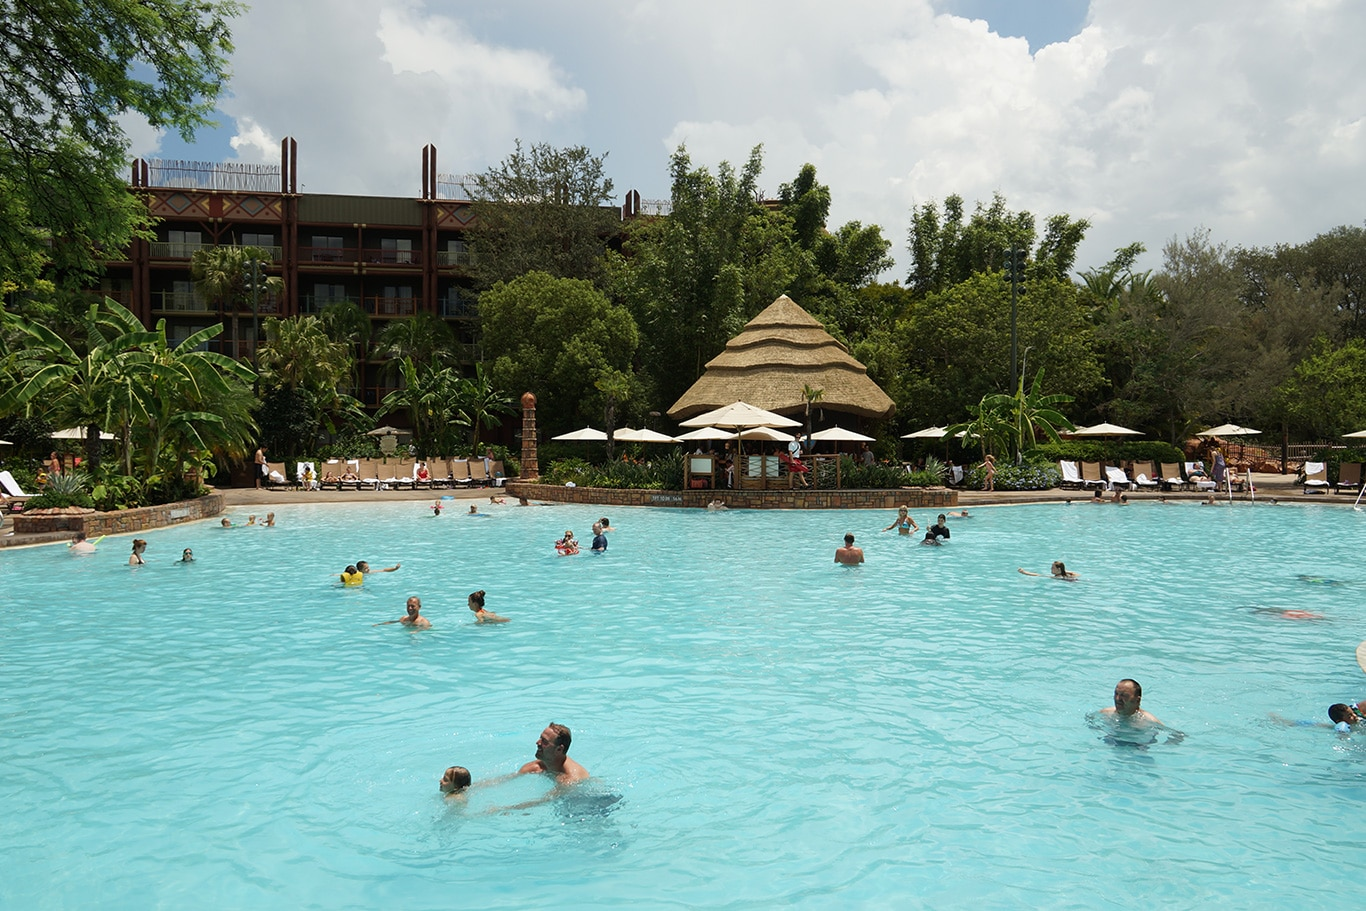 Disney's-Animal-Kingdom-Lodge-Villas-Pool